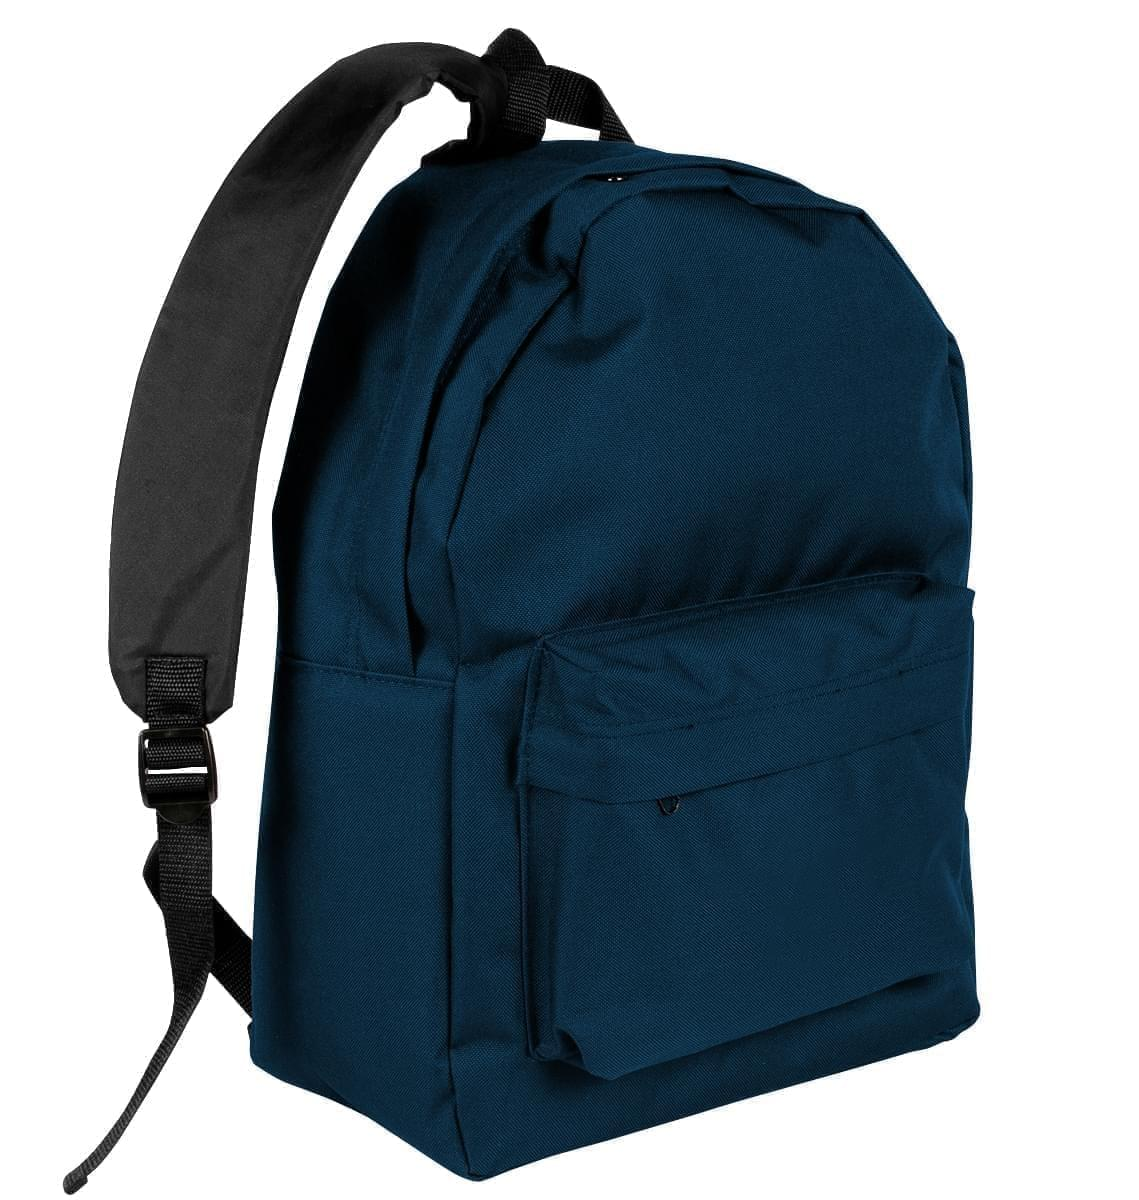 USA Made Nylon Poly Backpack Knapsacks, Navy-Black, 8960-AWR